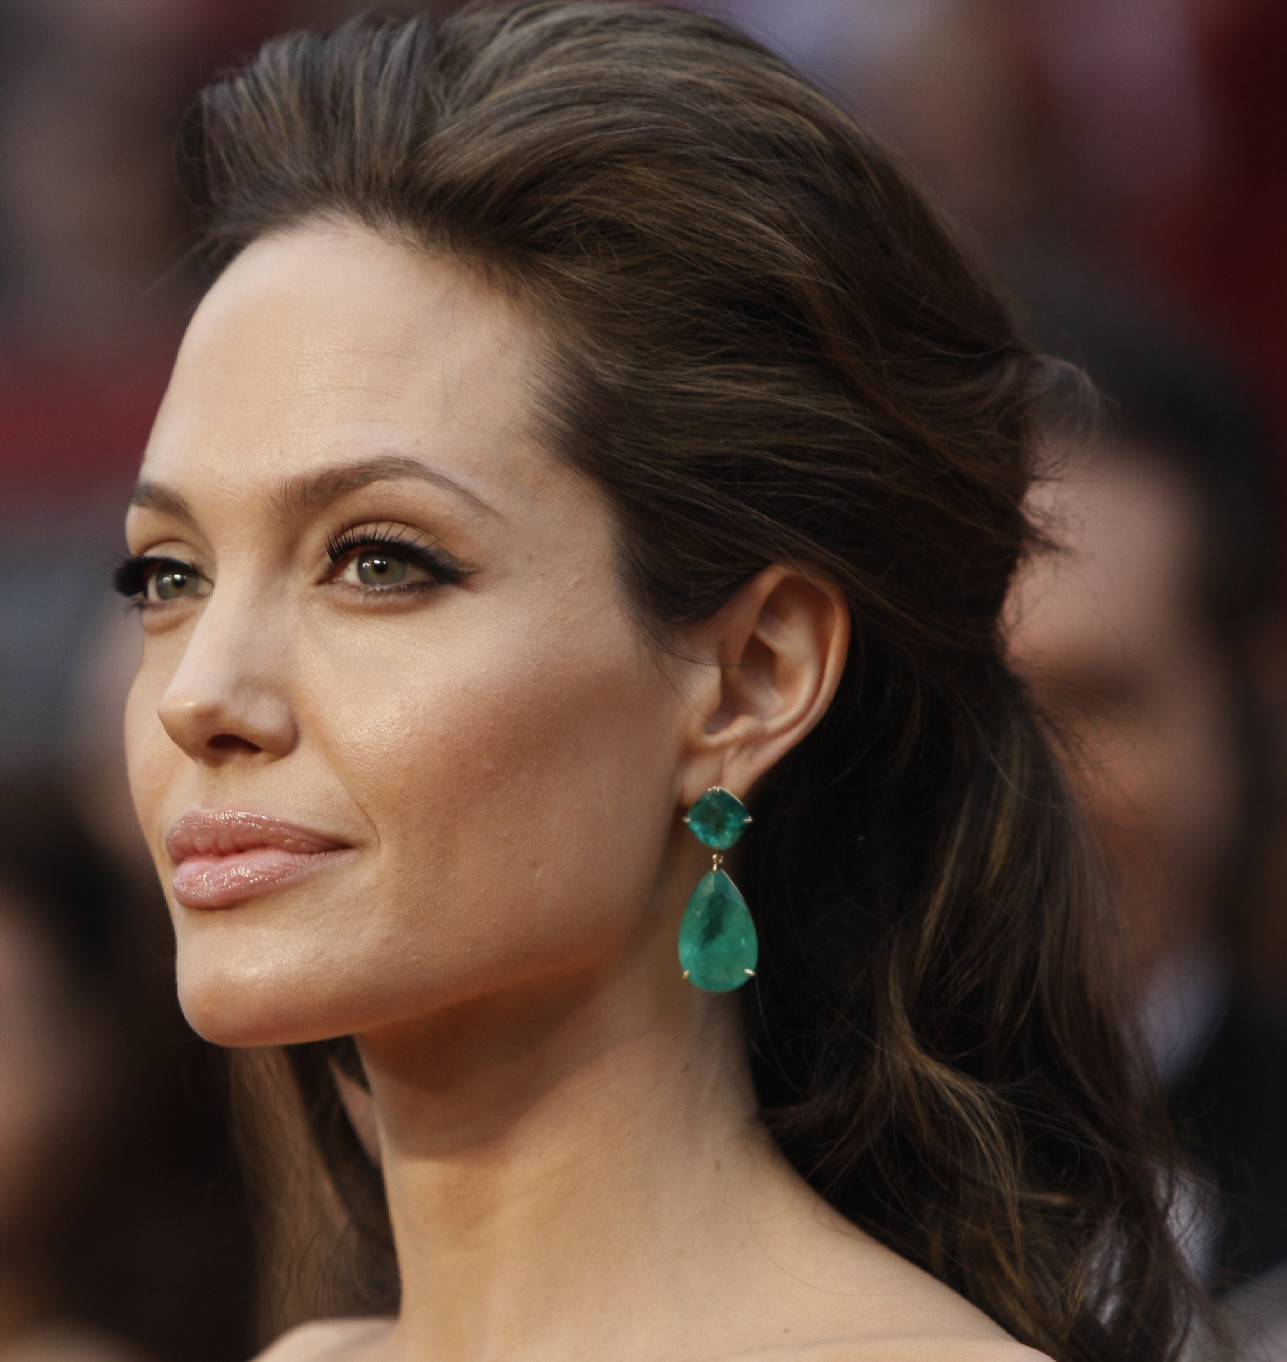 angelina-jolie-earrings-emerald